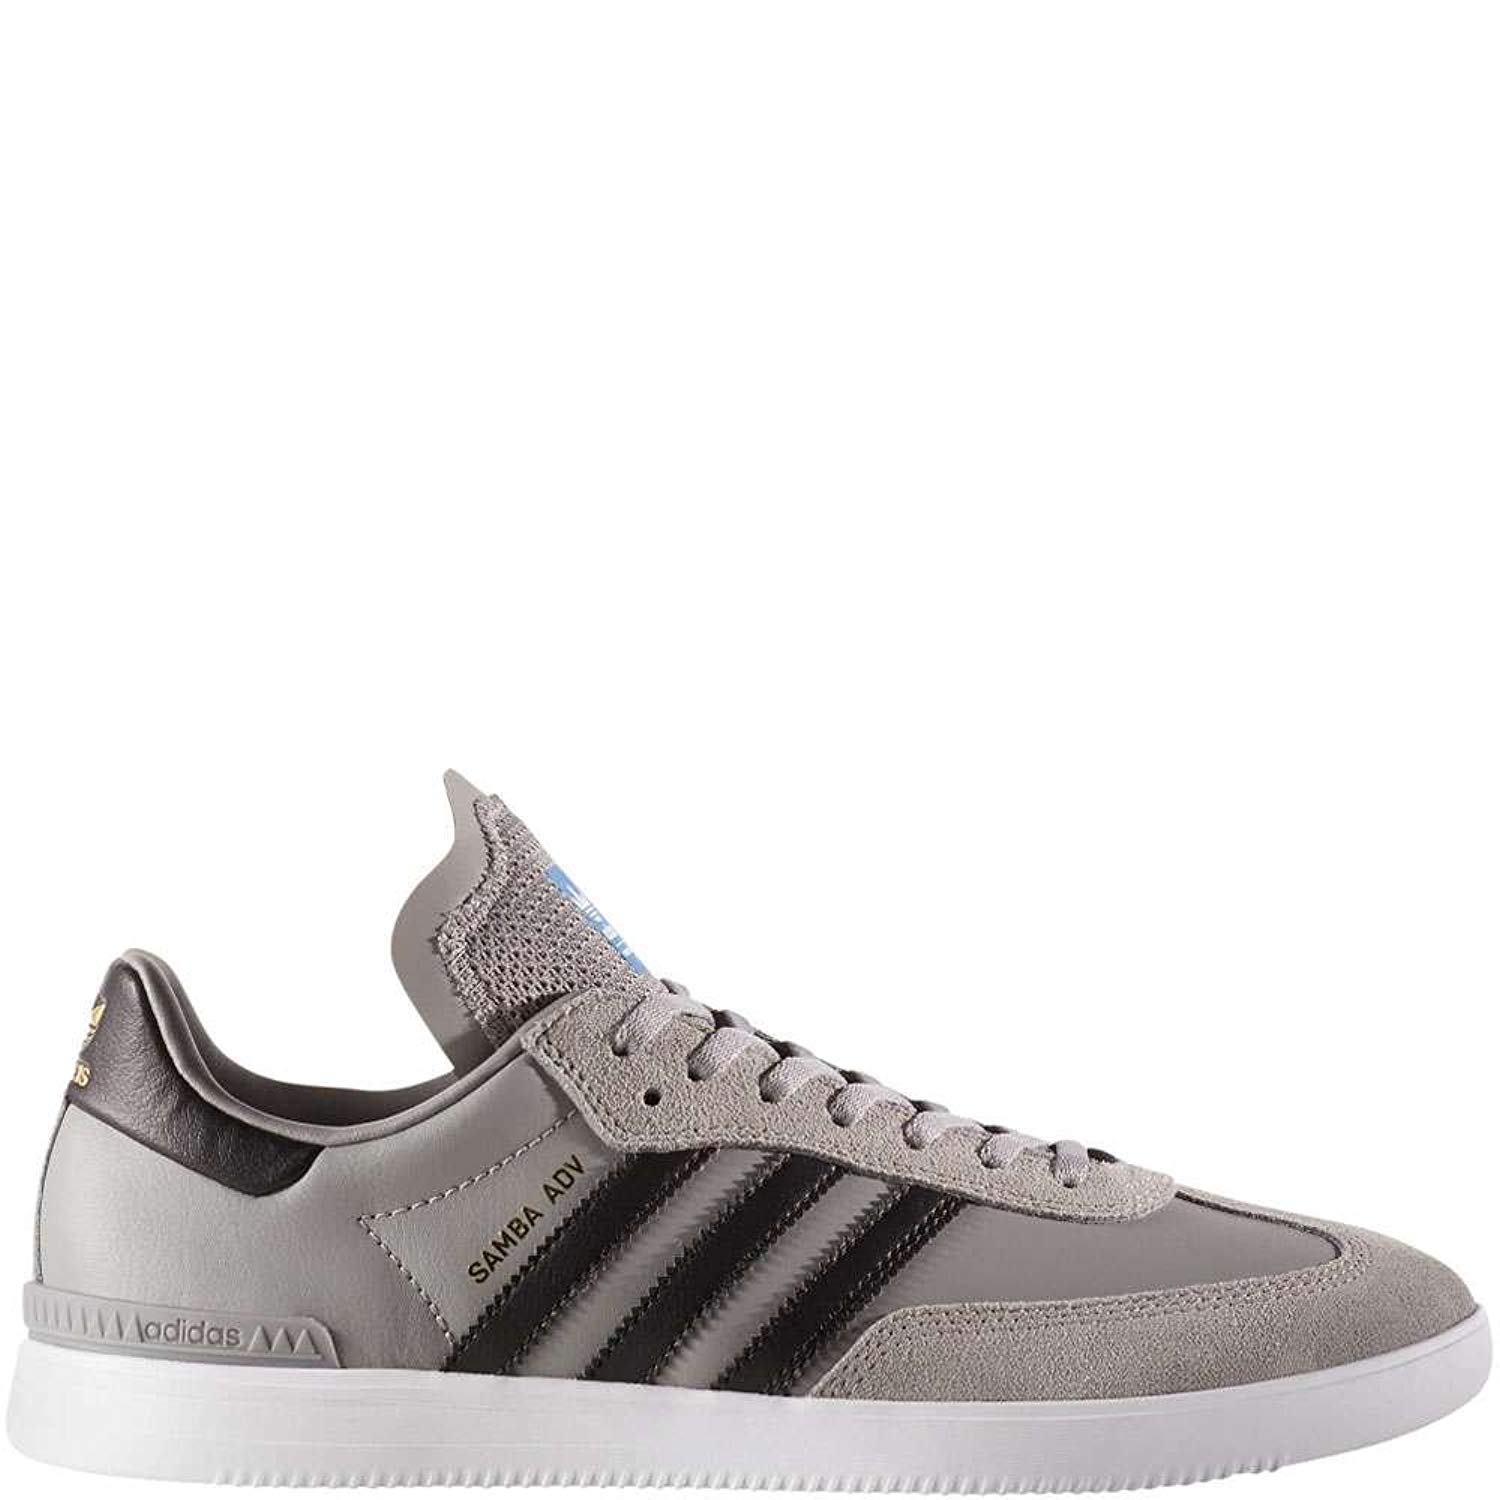 huge selection of f1aea 48b27 Get Quotations · adidas Samba ADV Skate Shoes - Mens